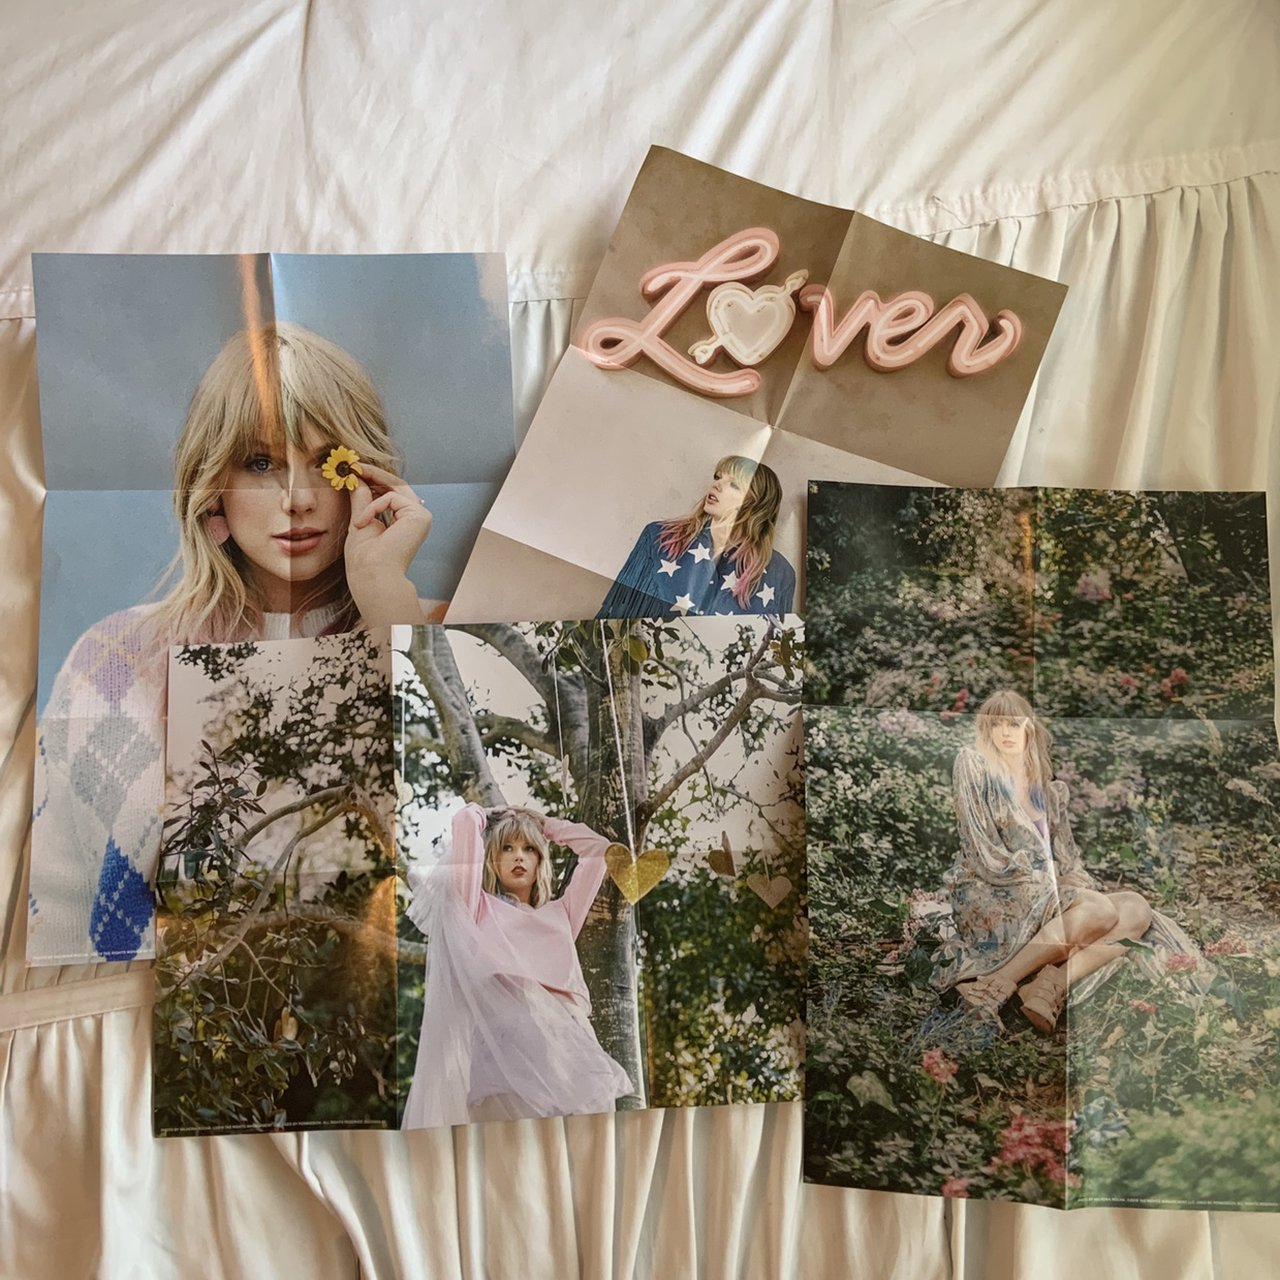 taylor swift lover posters brand new